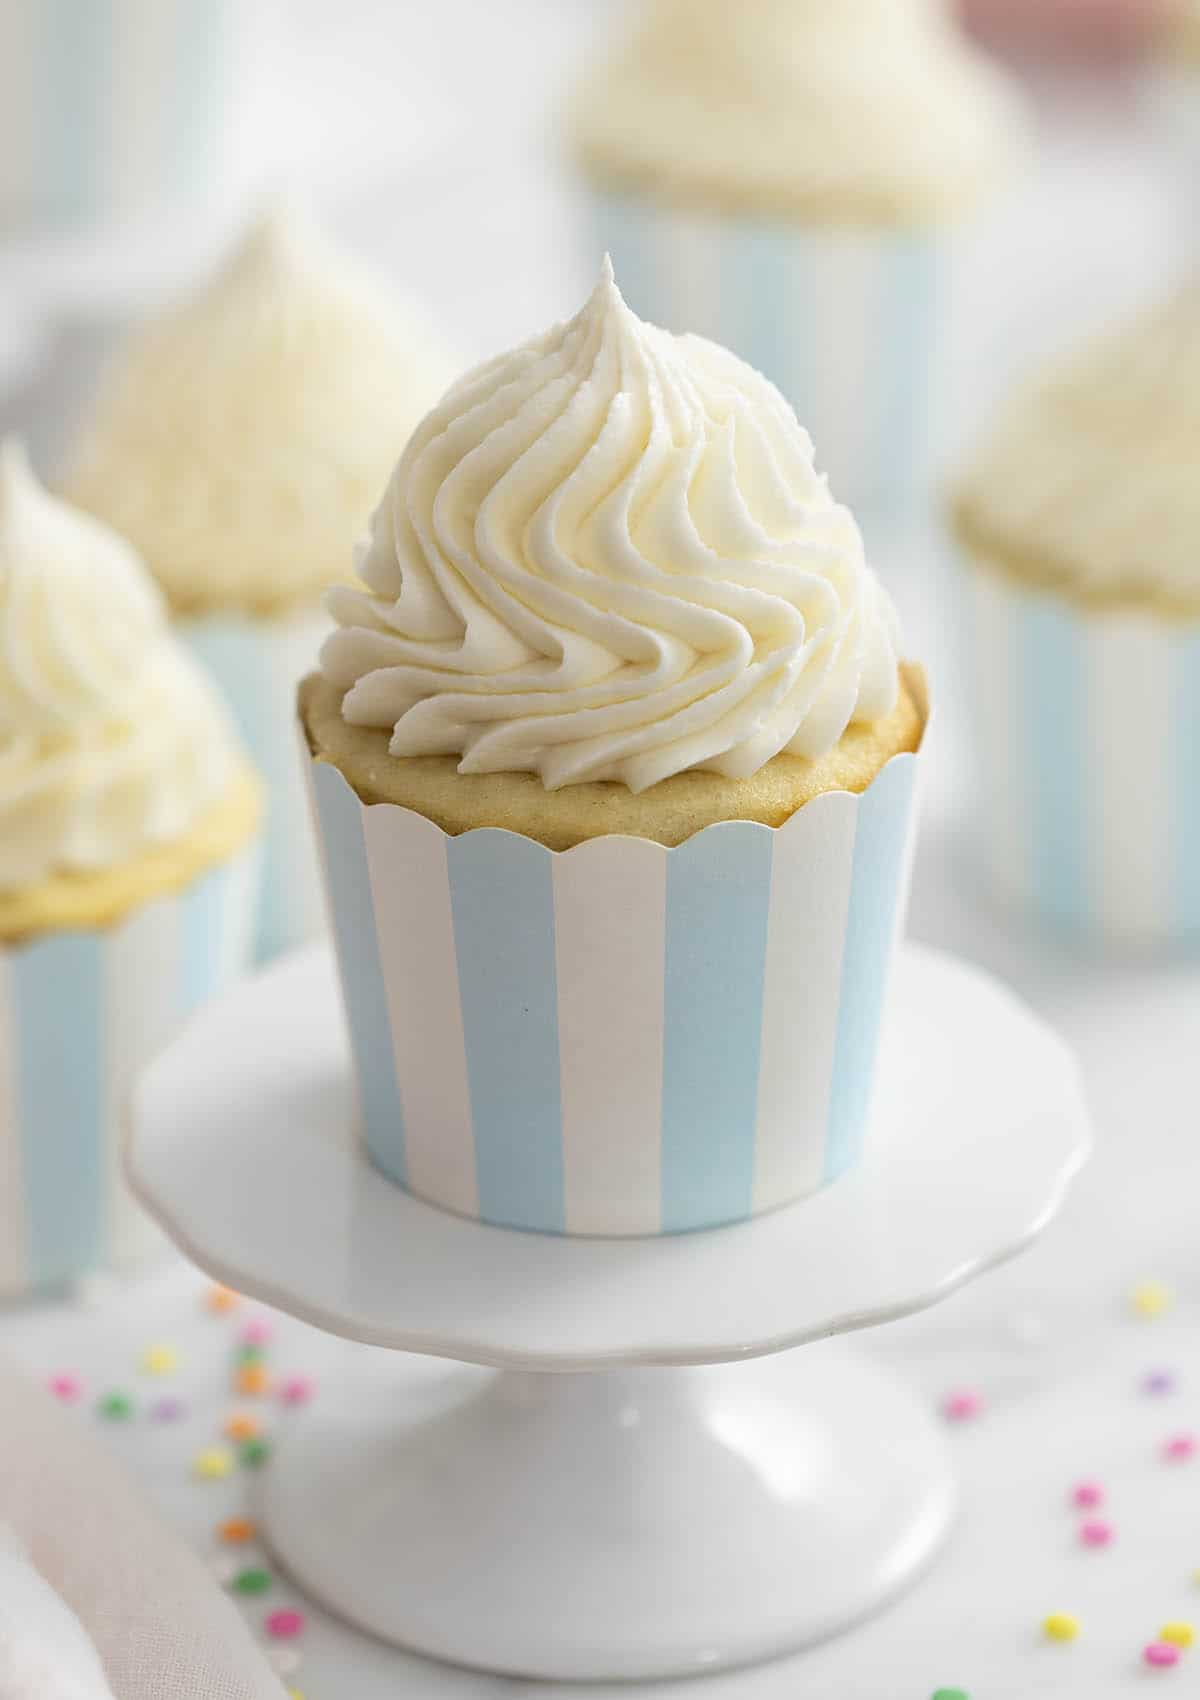 A photo of a vanilla cupcake on a cupcake stand with vanilla buttercream frosting beautifully piped on top.